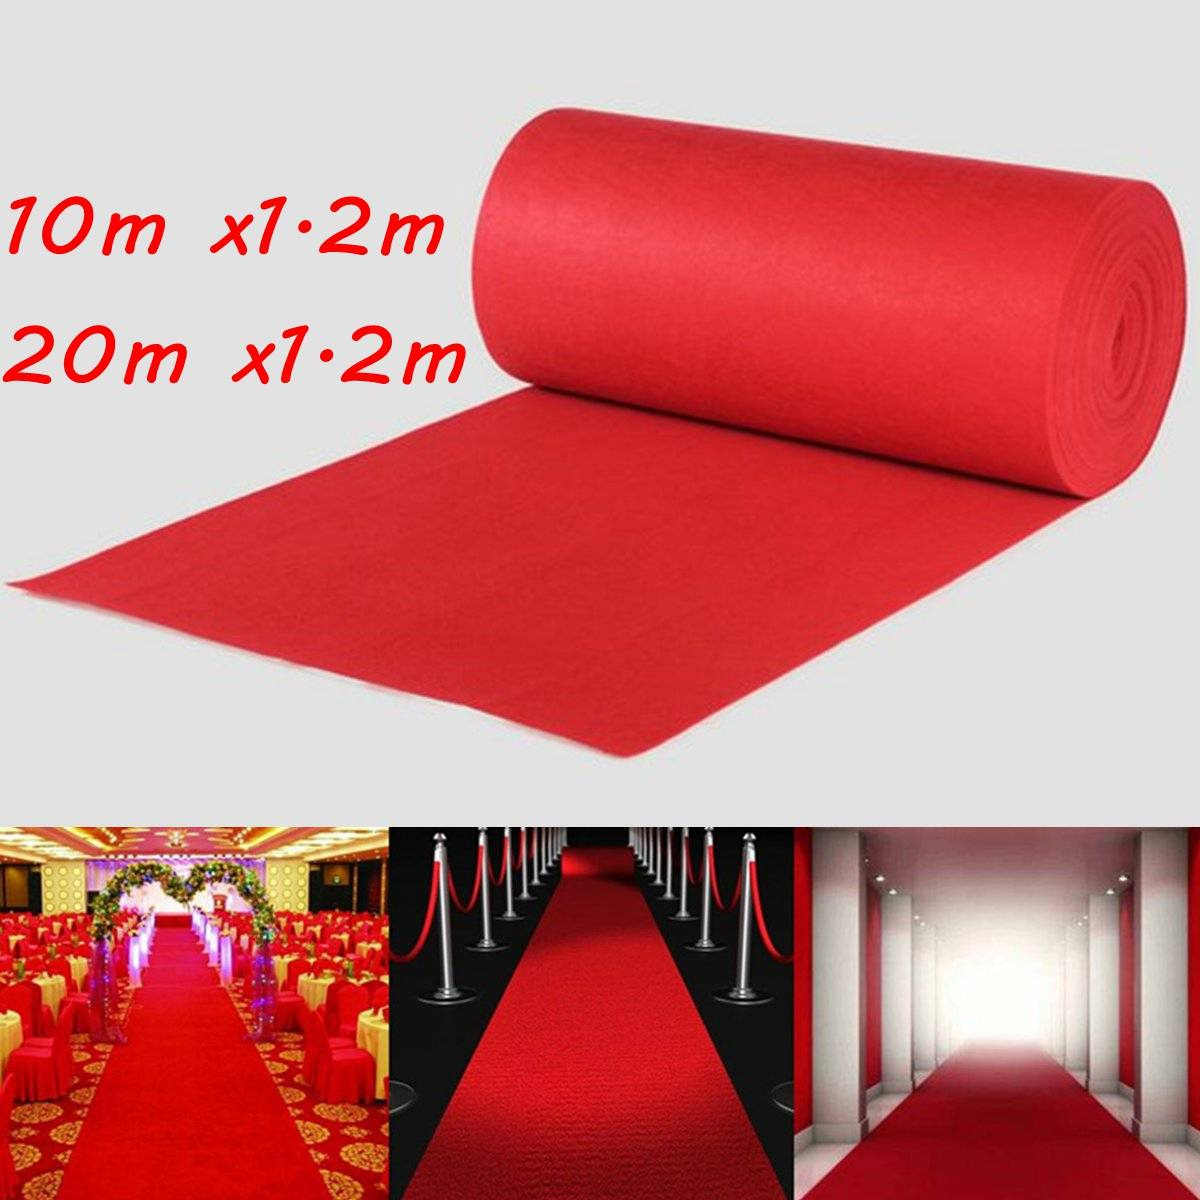 10/20M Wedding Aisle Floor Runner Carpet Polyester Large Red Carpet Rug Hollywood Awards Events Wedding Events Decoration10/20M Wedding Aisle Floor Runner Carpet Polyester Large Red Carpet Rug Hollywood Awards Events Wedding Events Decoration